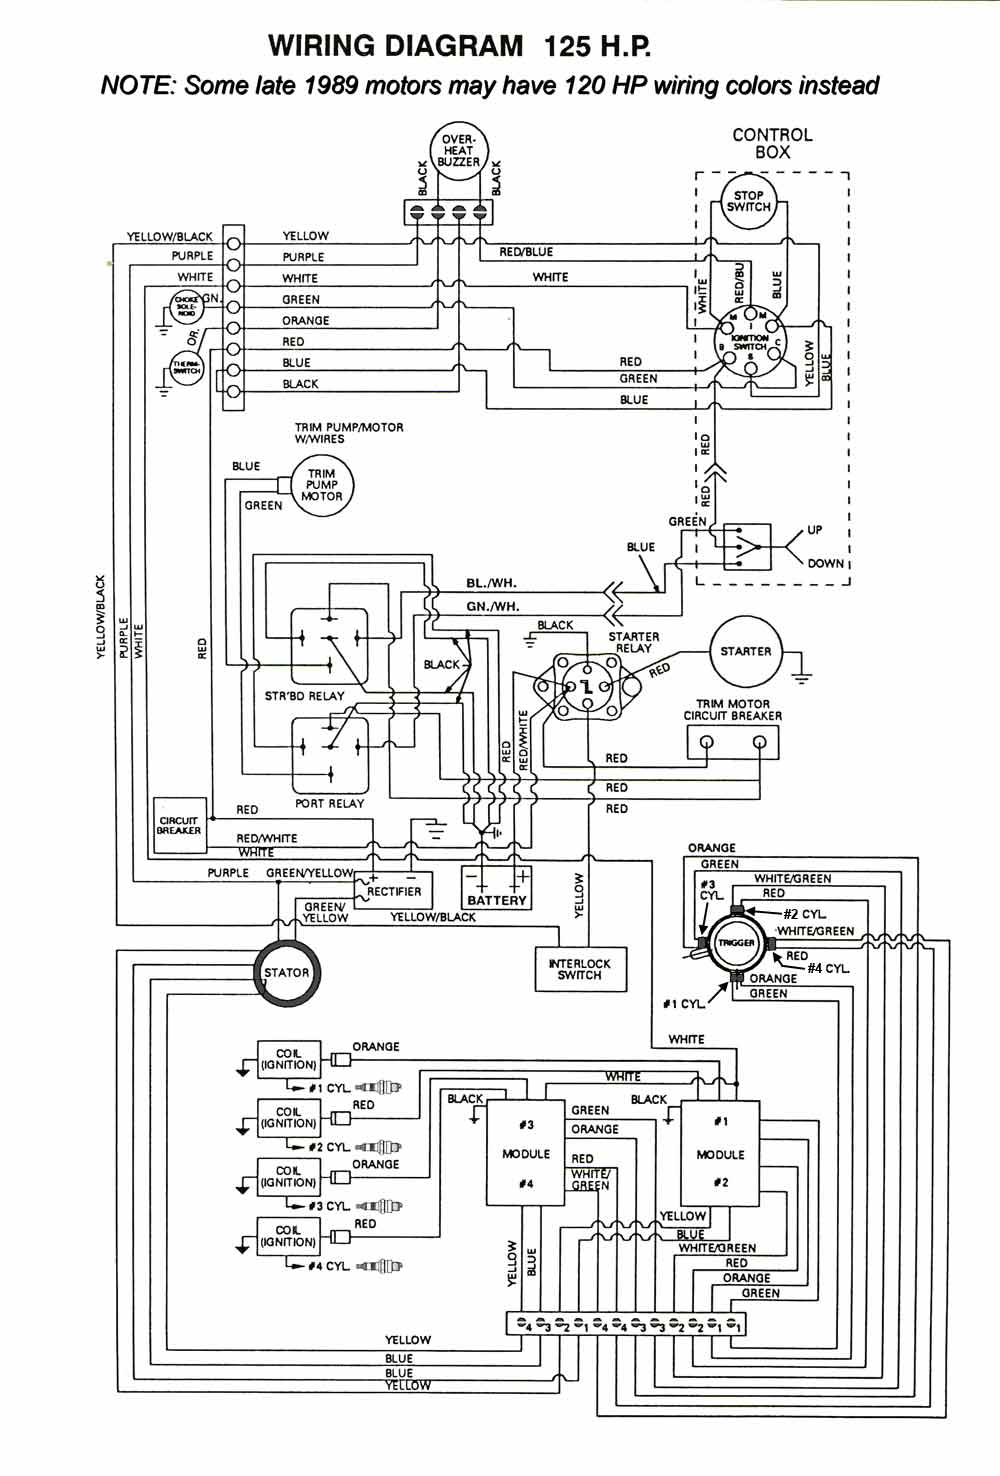 medium resolution of wiring diagram for a 1986 bayliner 16 wiring diagram new 1989 skeeter boat wiring diagram